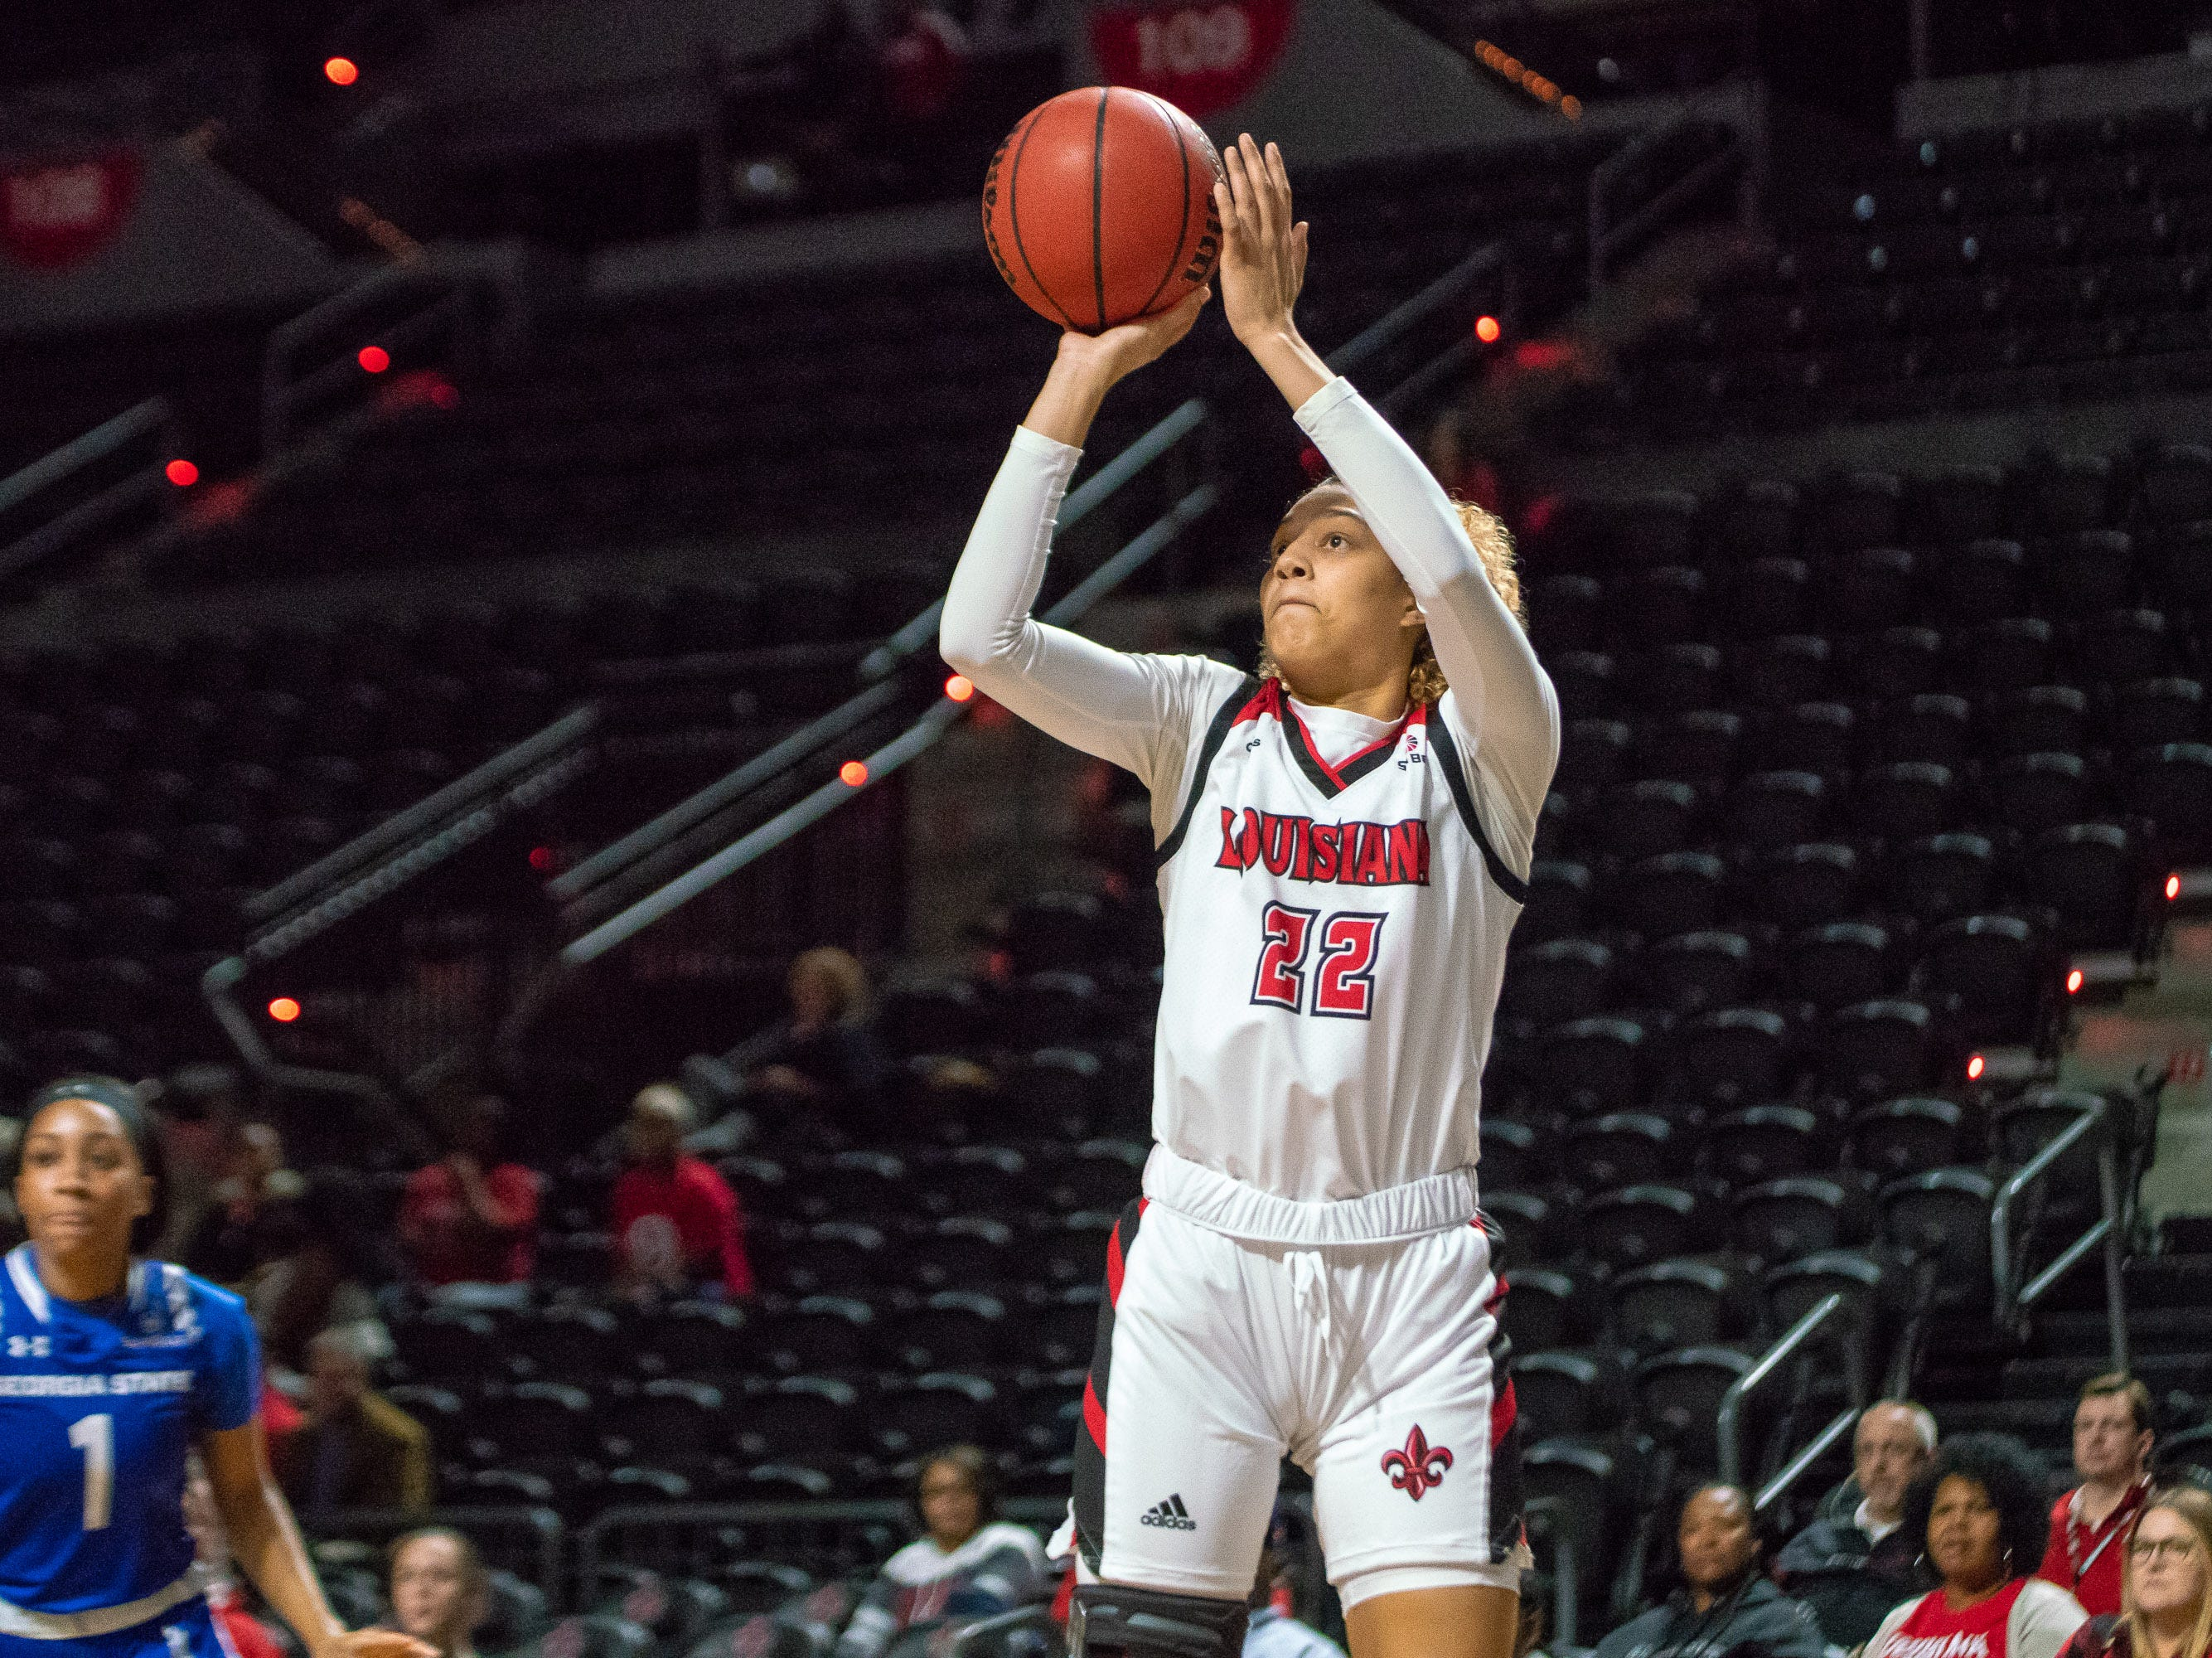 UL's Kendall Bess shoots for two-points as the Ragin' Cajuns play against the Georgia State Panthers at the Cajundome on January 10, 2019.